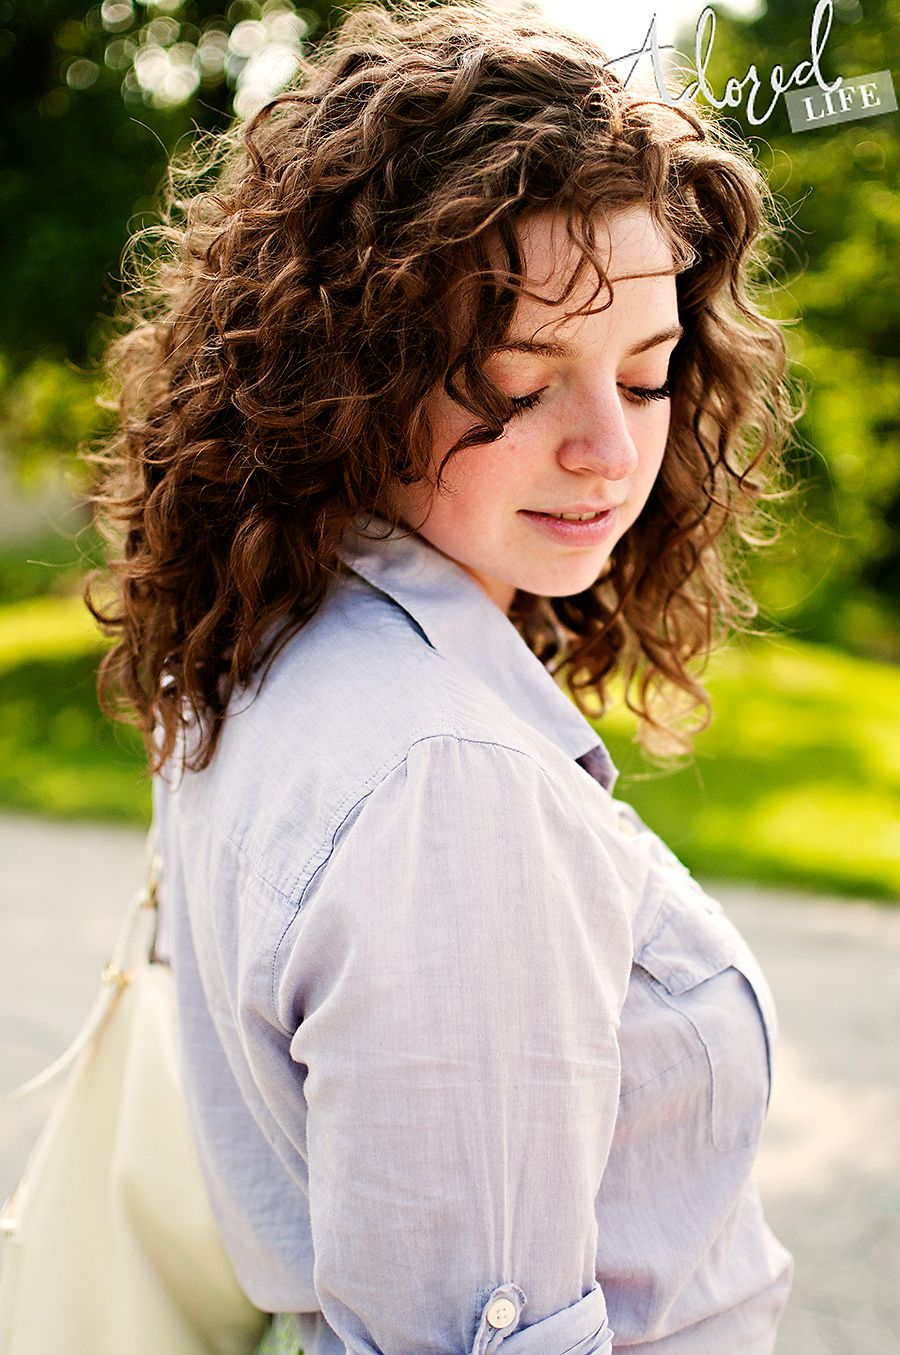 Just a touch hair styles pinterest naturally curly hair